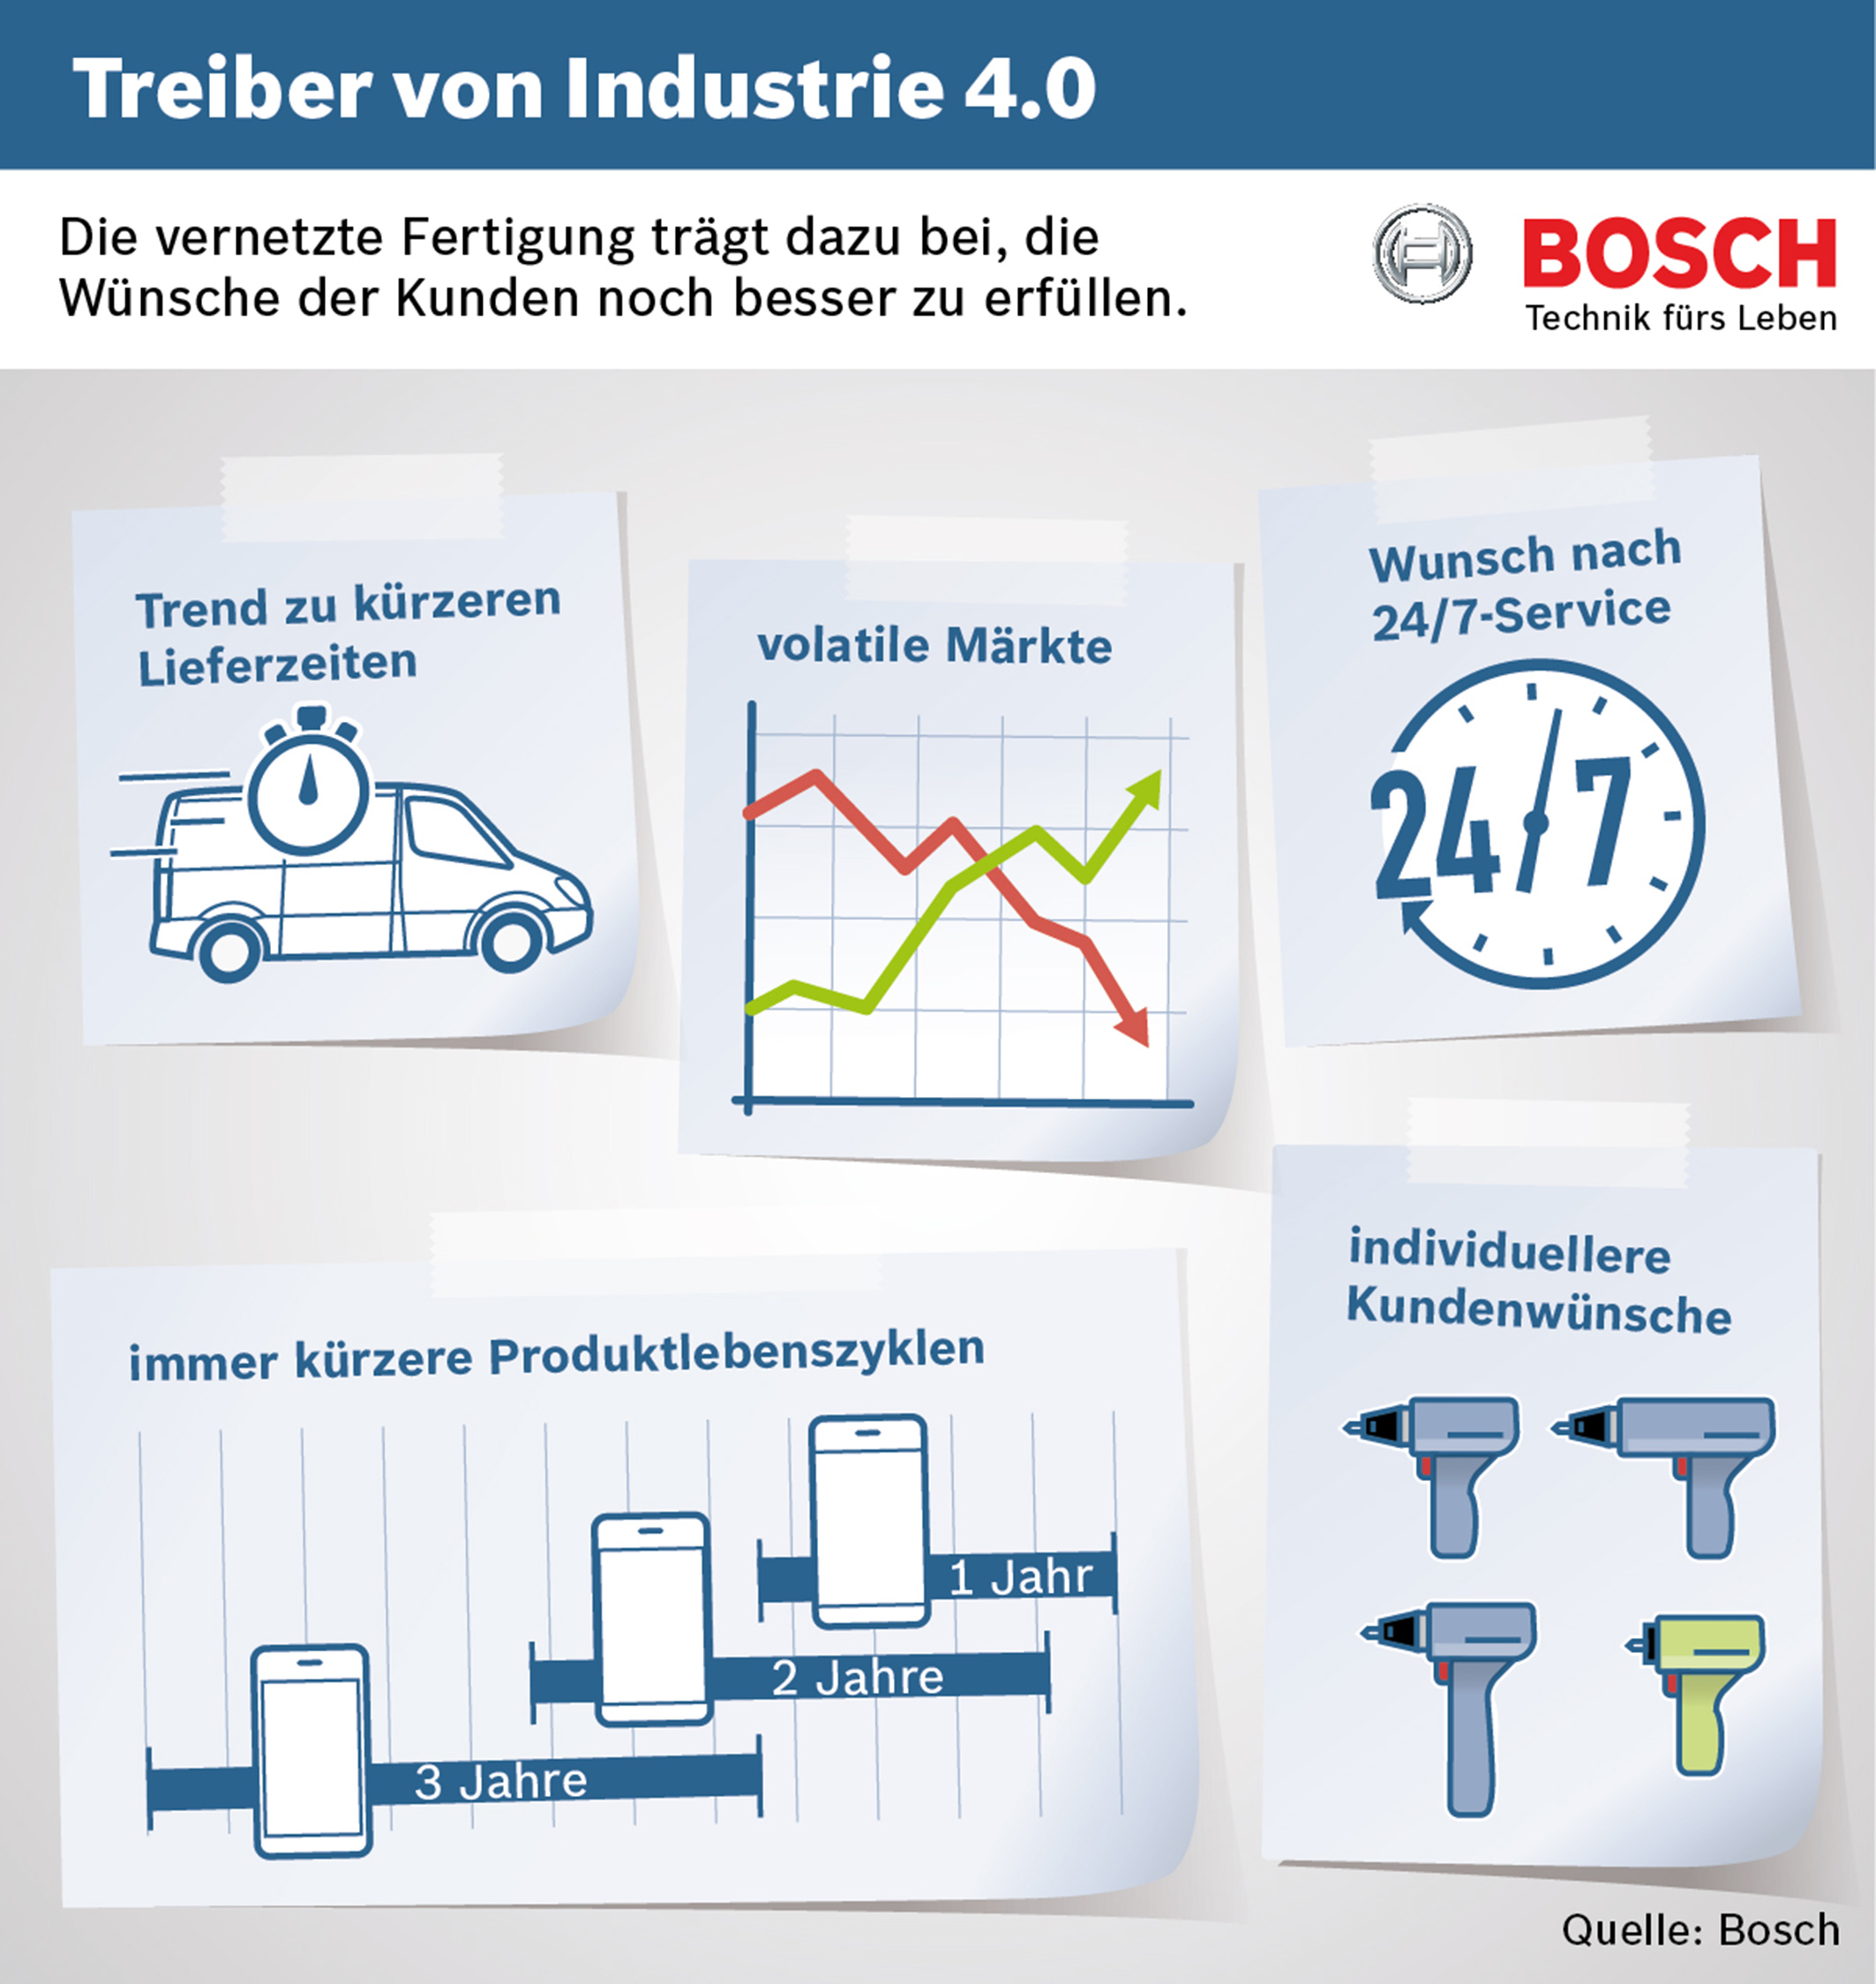 bosch bndelt kompetenzen zur industrie 40 im innovationscluster connected industry bosch media service - Industrie 40 Beispiele